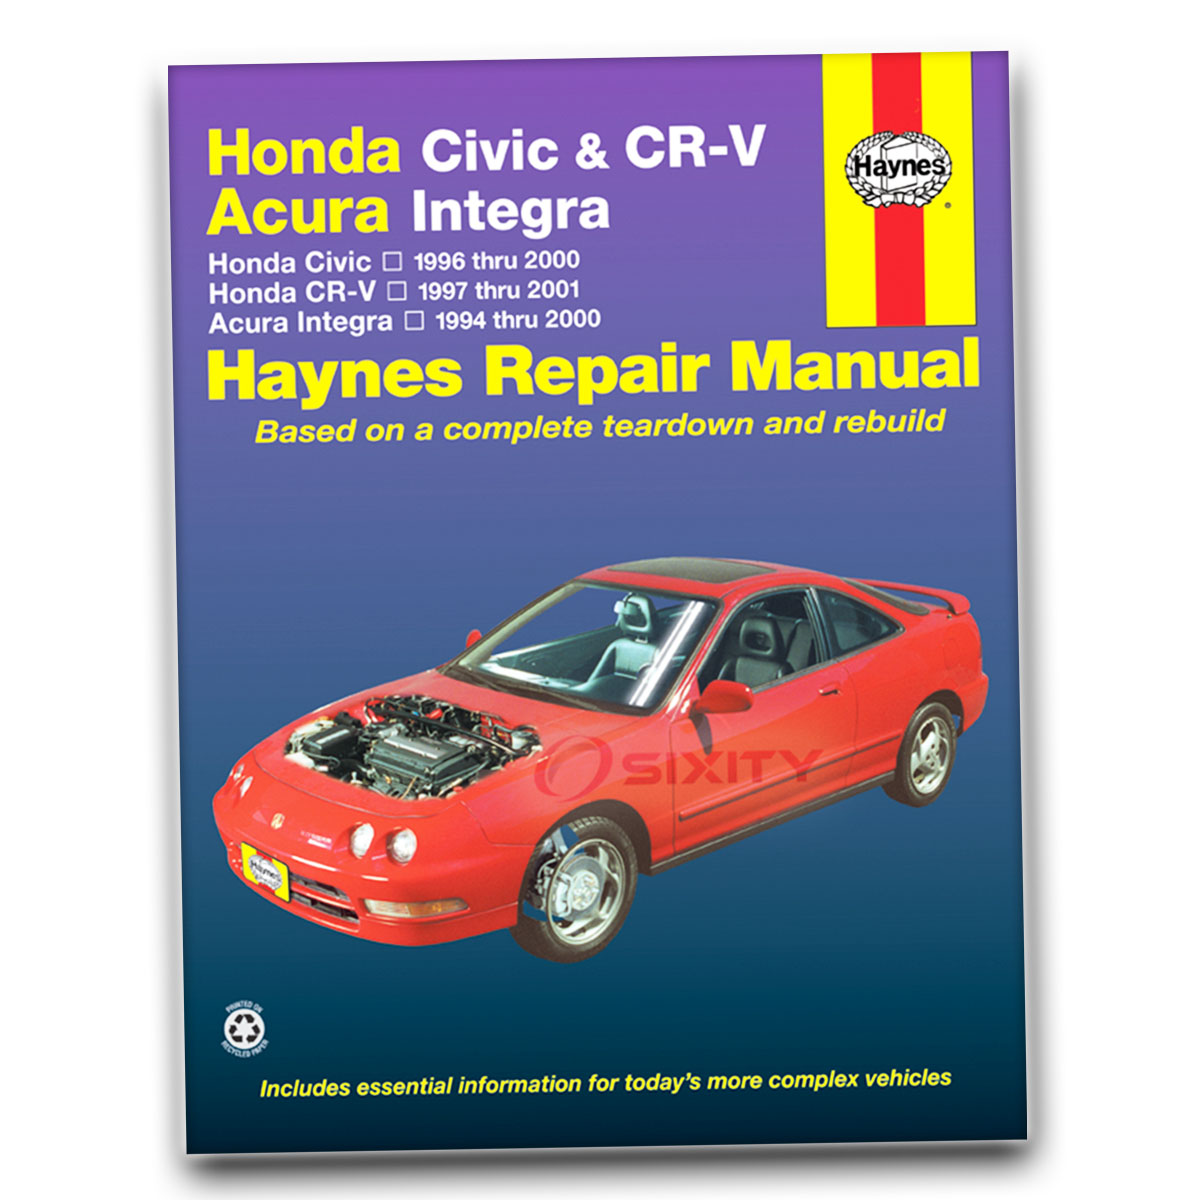 Jdm Honda Crv 94 Manual Guide